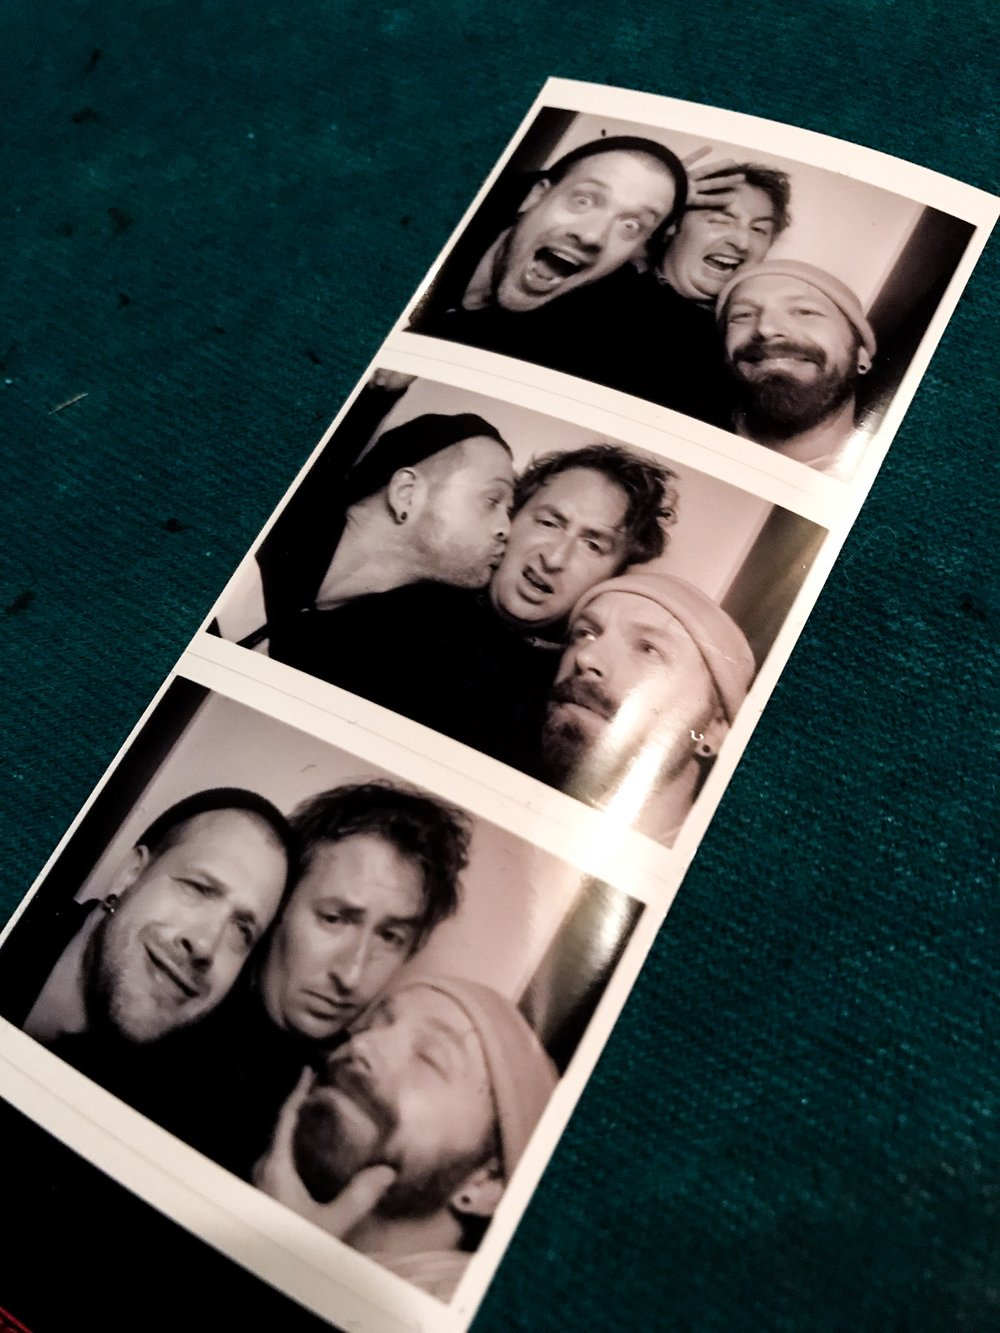 Brits in a photo booth